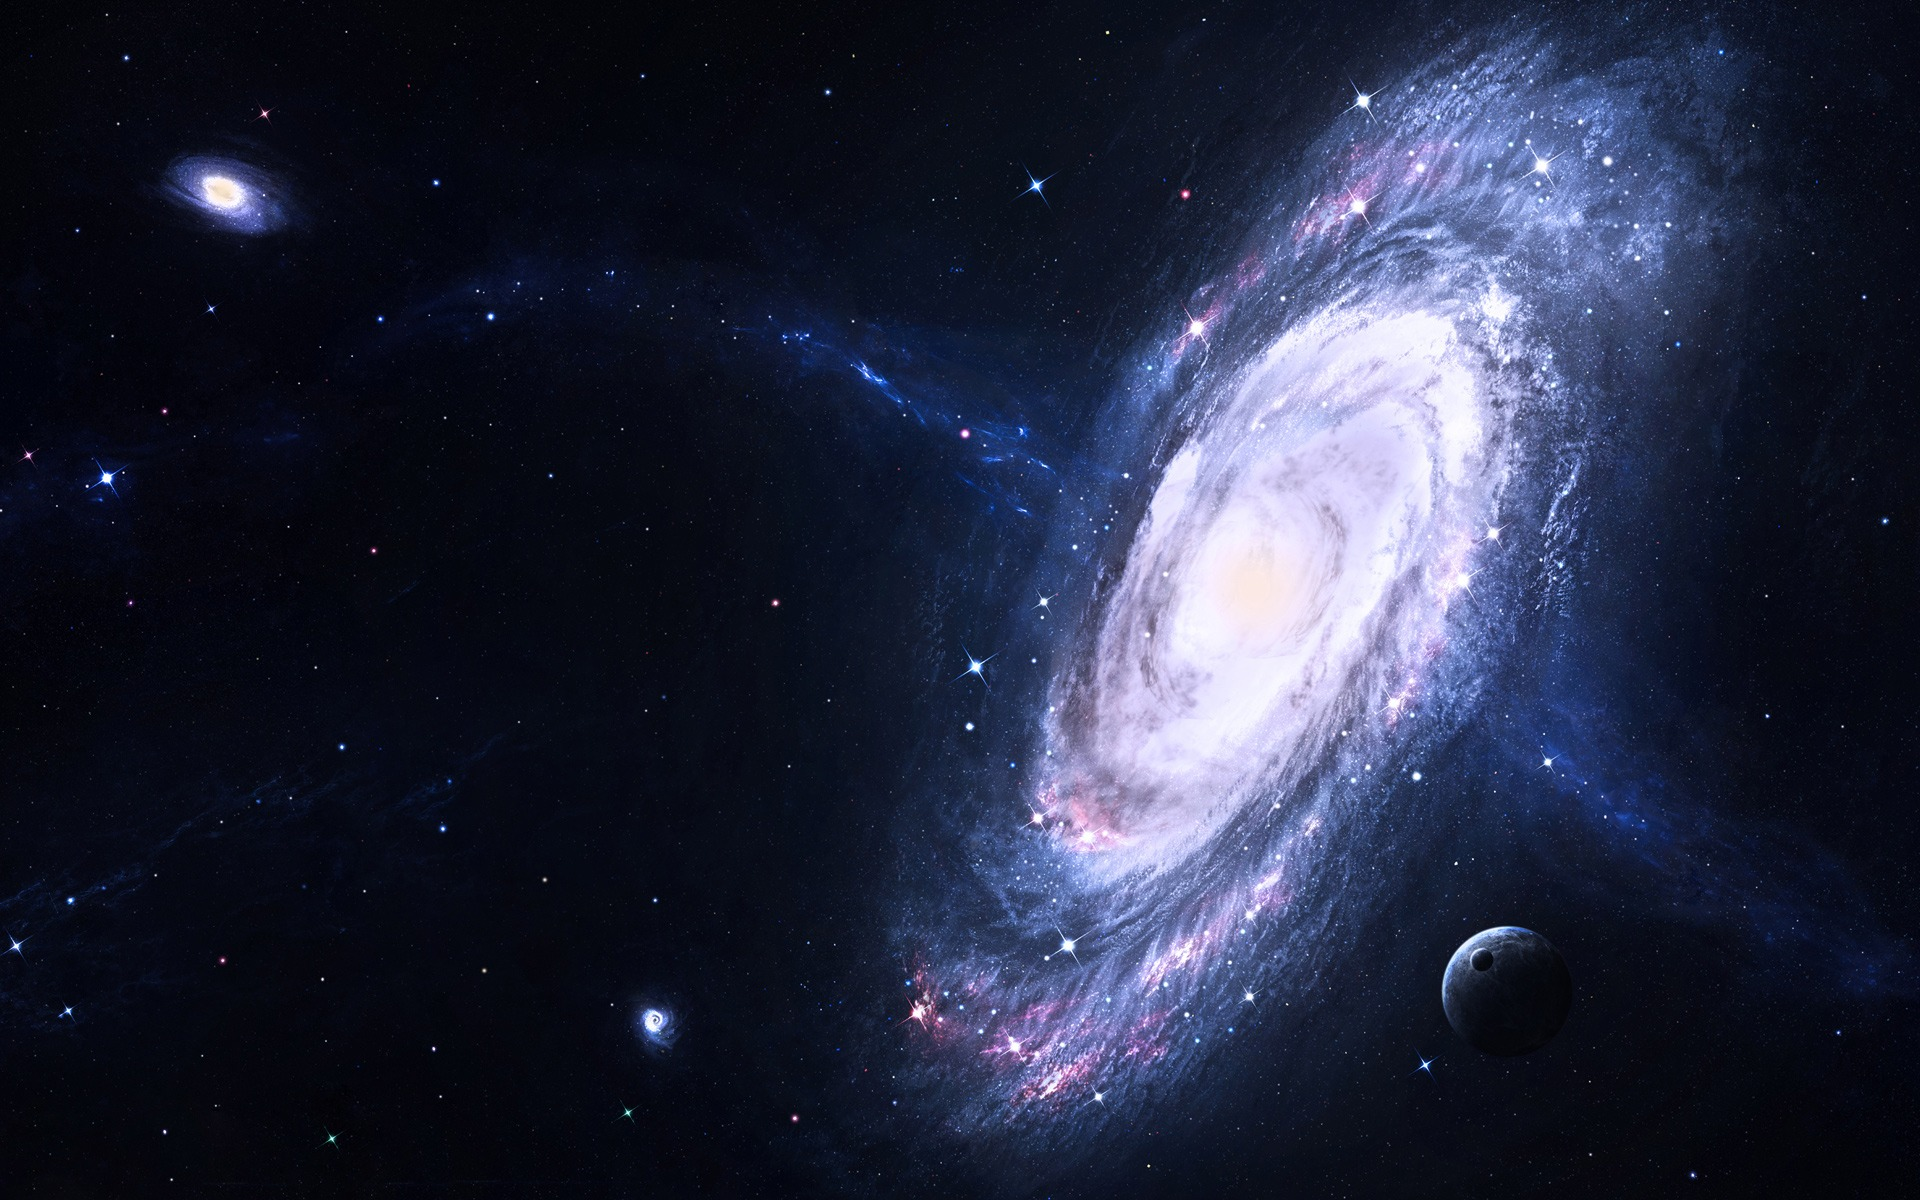 Galaxy Wallpaper Space Nature Wallpapers in jpg format for ...